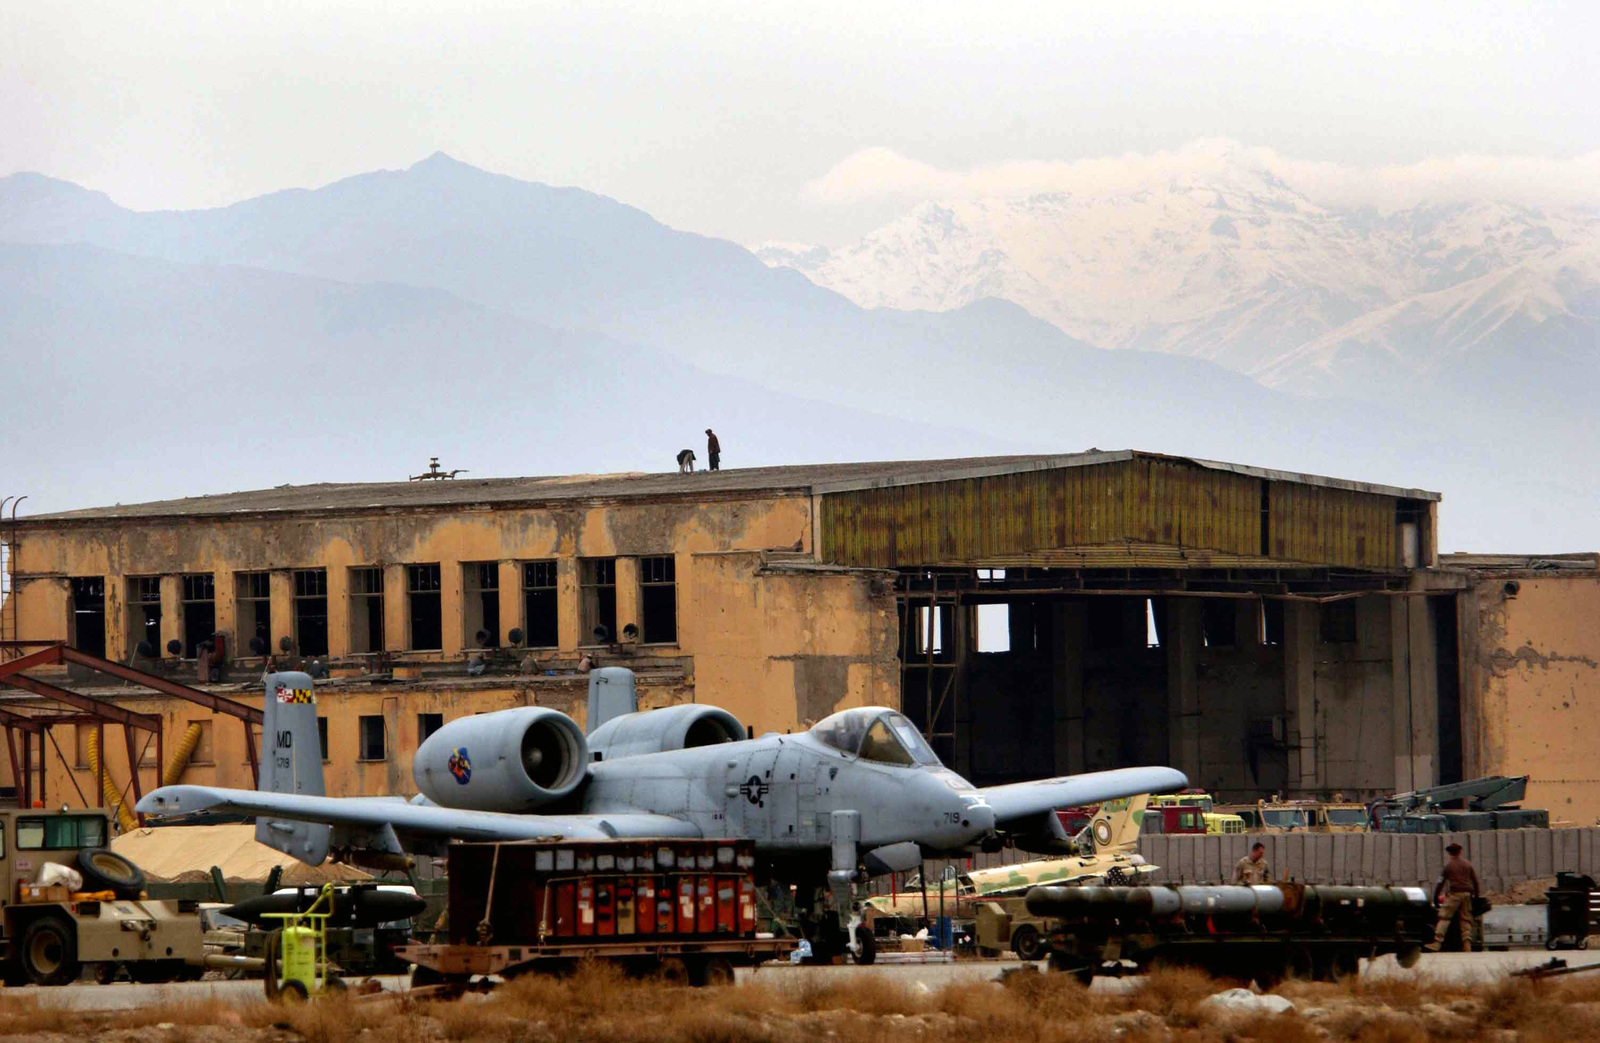 A US Air Force (USAF) A-10 Thunderbolt sits on the ramp at Bagram Air Base (AB), Afghanistan, in support of Operation ENDURING FREEDOM - U.S. National Archives Public Domain Search